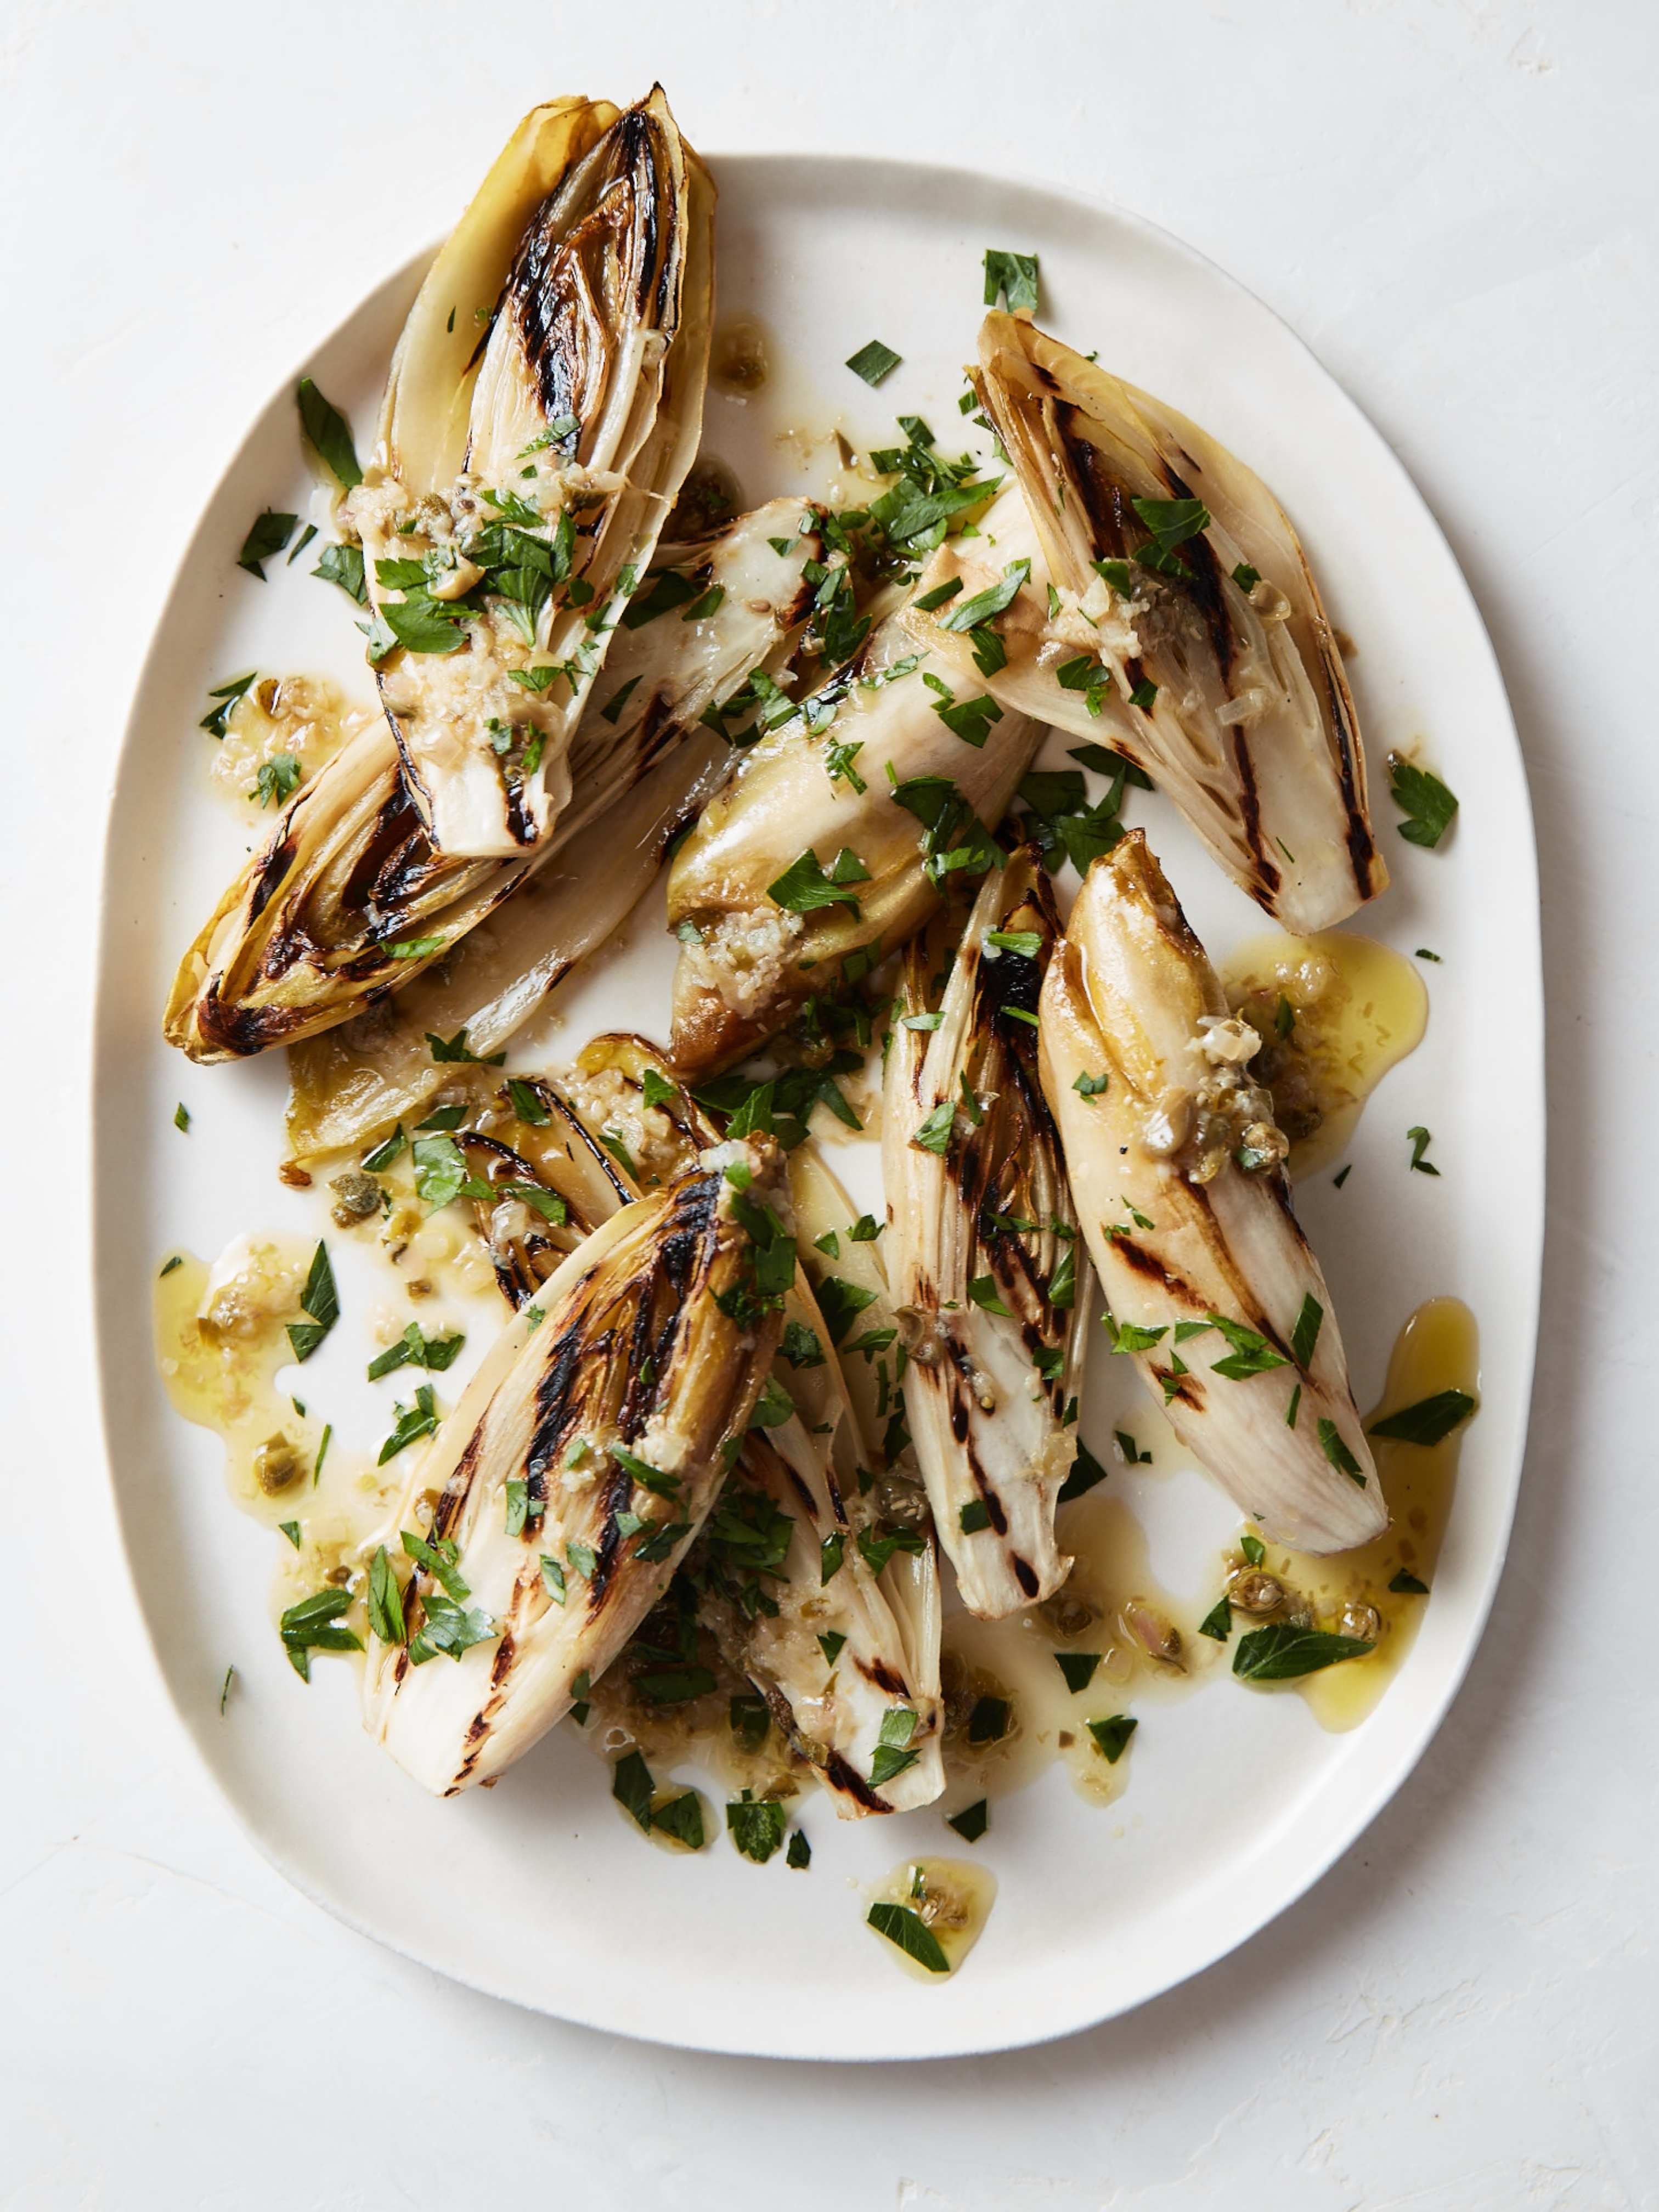 6 Easy Grilling Recipes for Dining Al Fresco This Summer